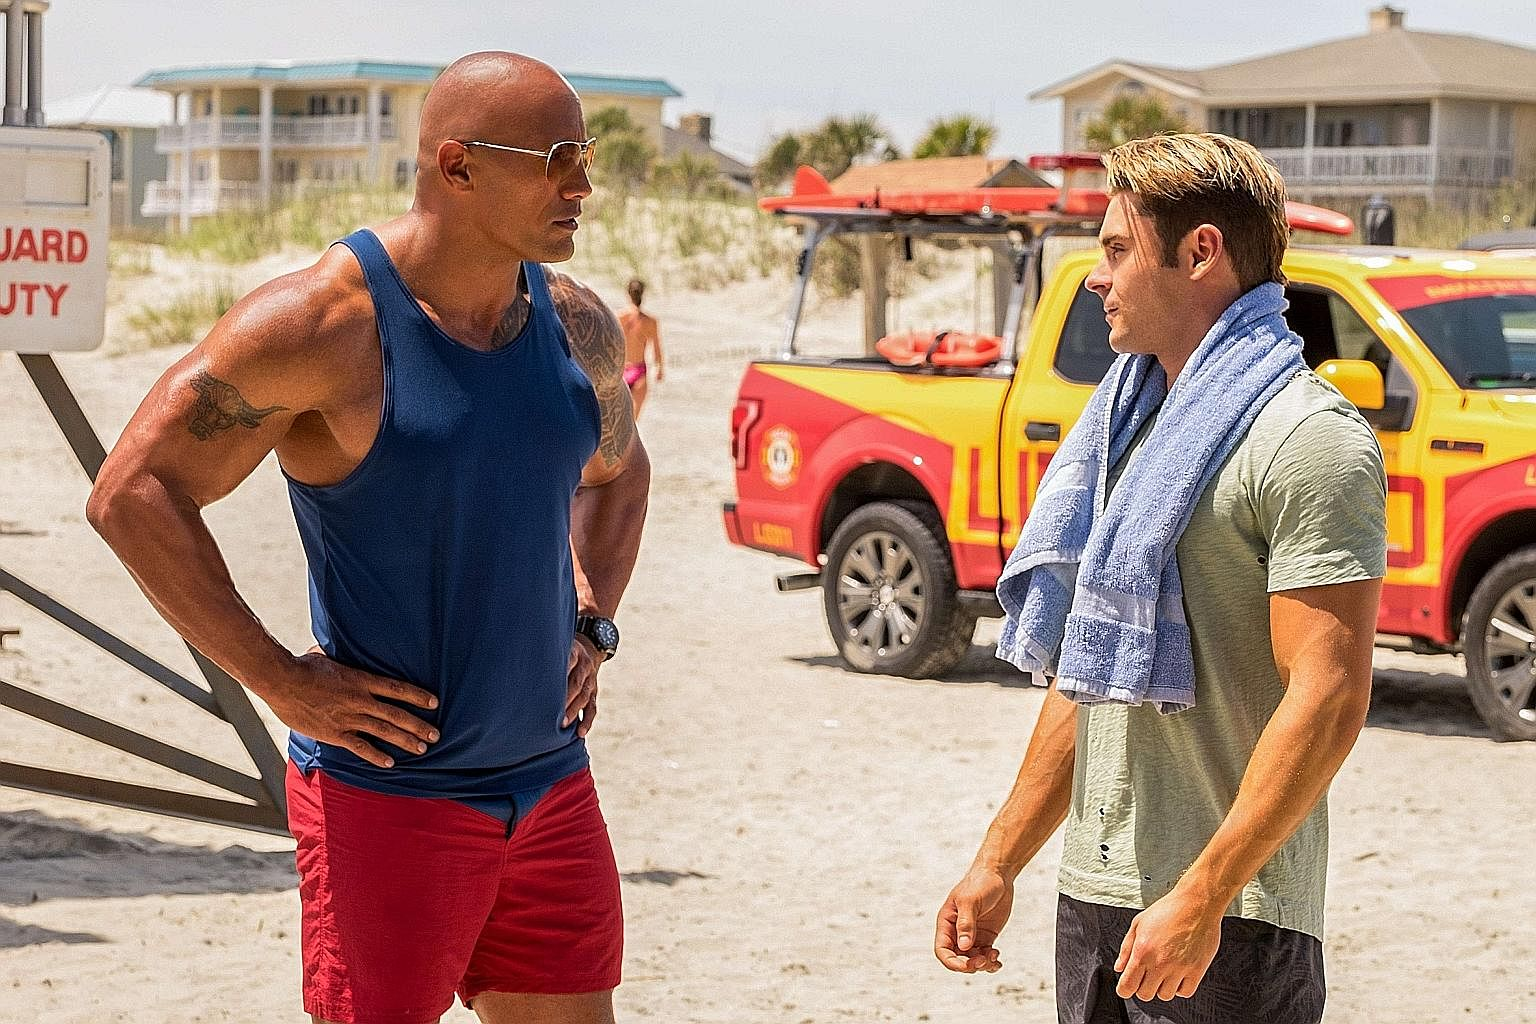 Dwayne Johnson (above left) and Zac Efron in the Baywatch reboot, and Brad Pitt as a general in War Machine.